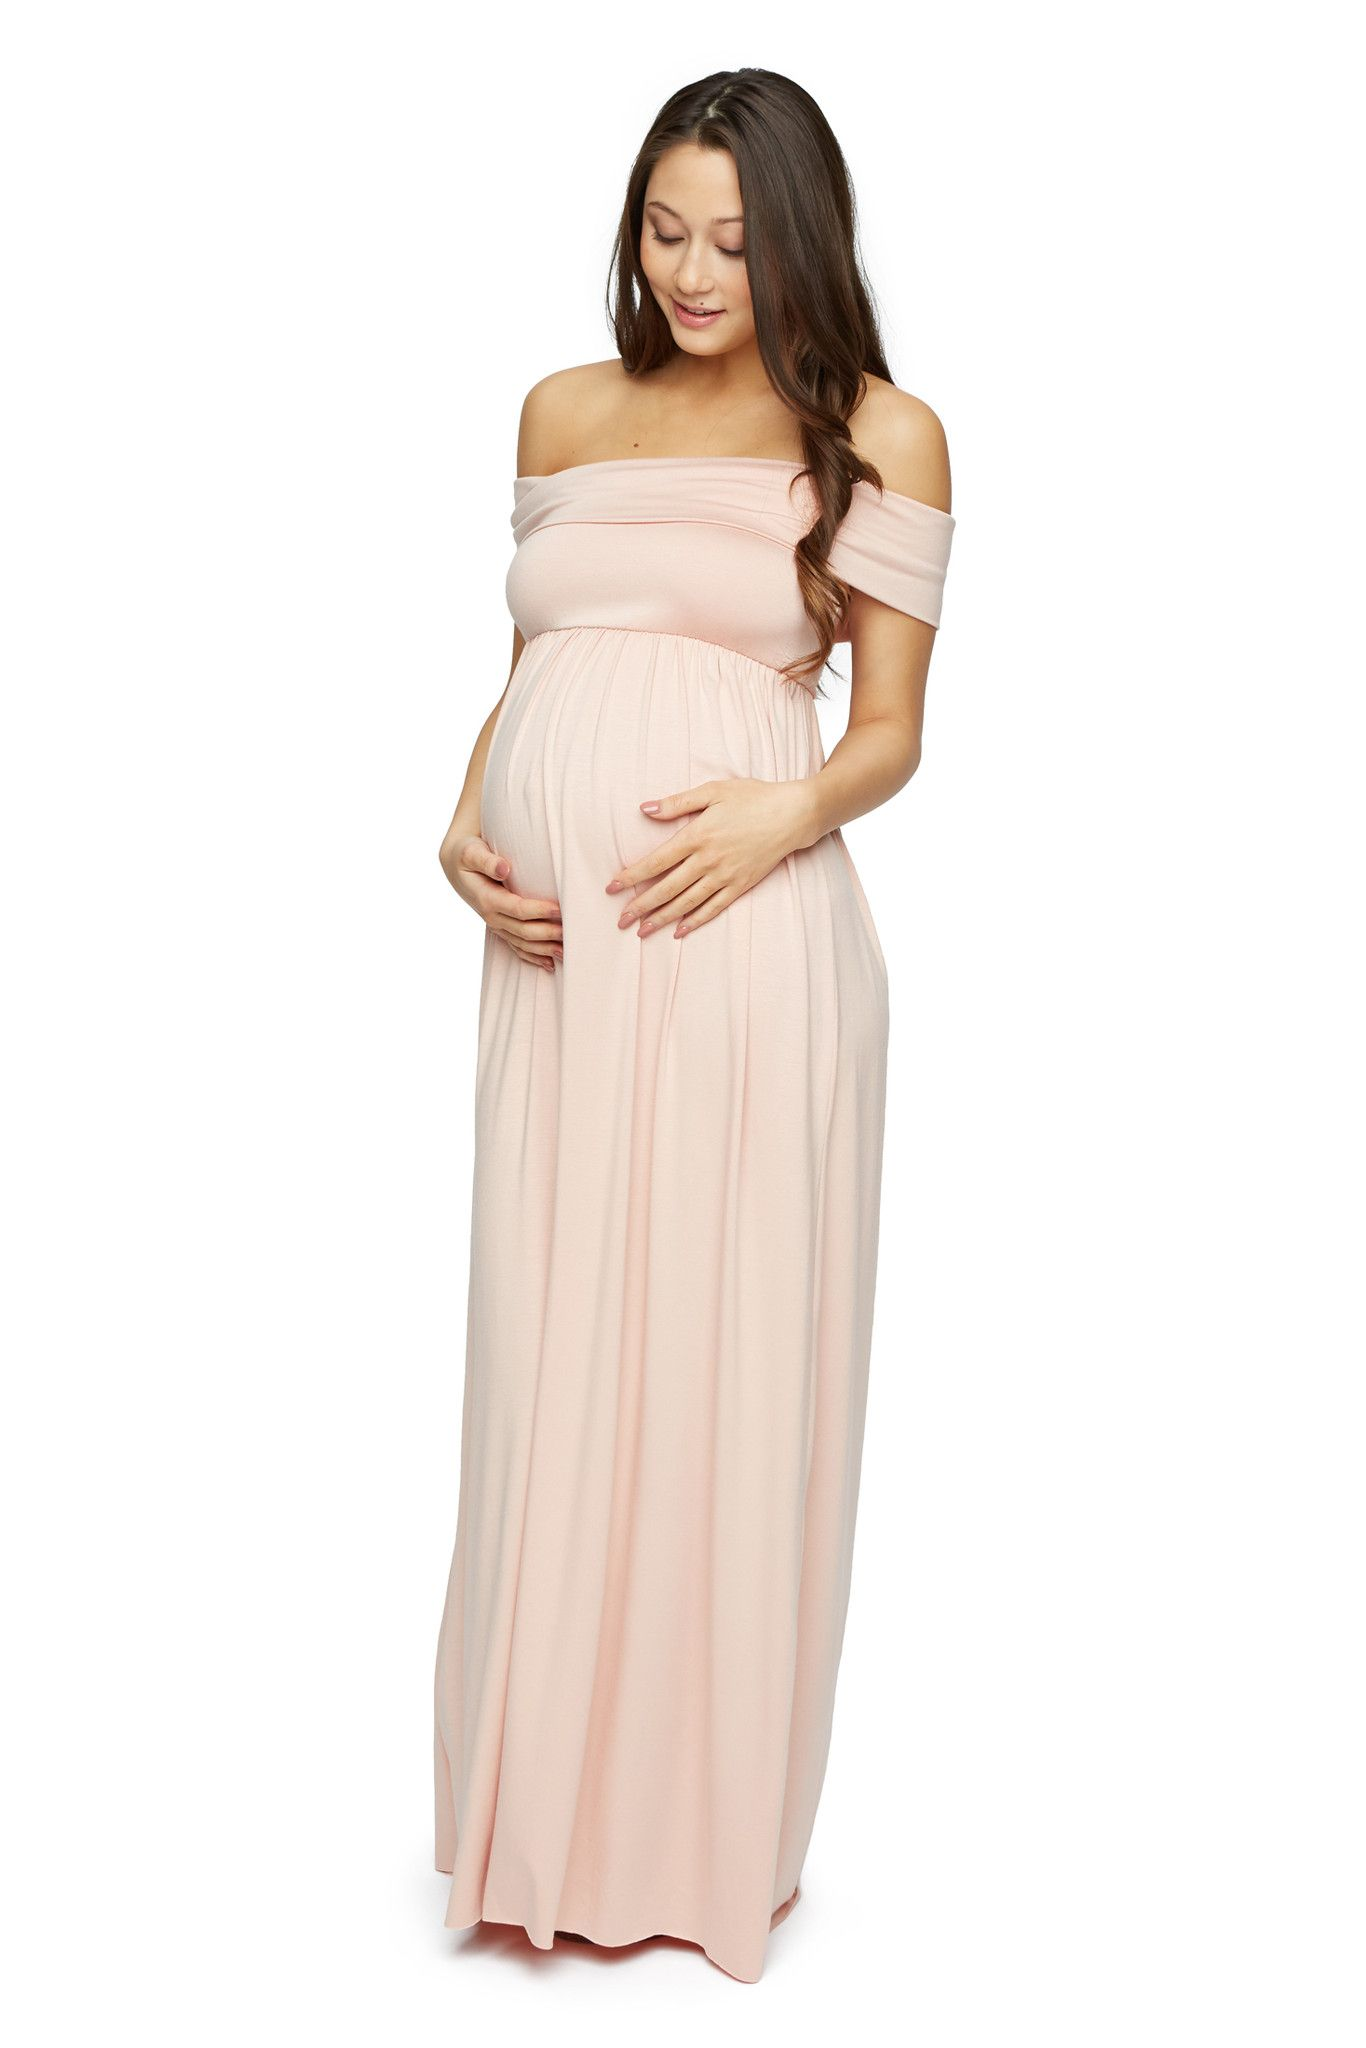 Rachel pally maternity midsummer off the shoulder dress bisou rachel pally maternity midsummer off the shoulder dress bisou pink ombrellifo Image collections